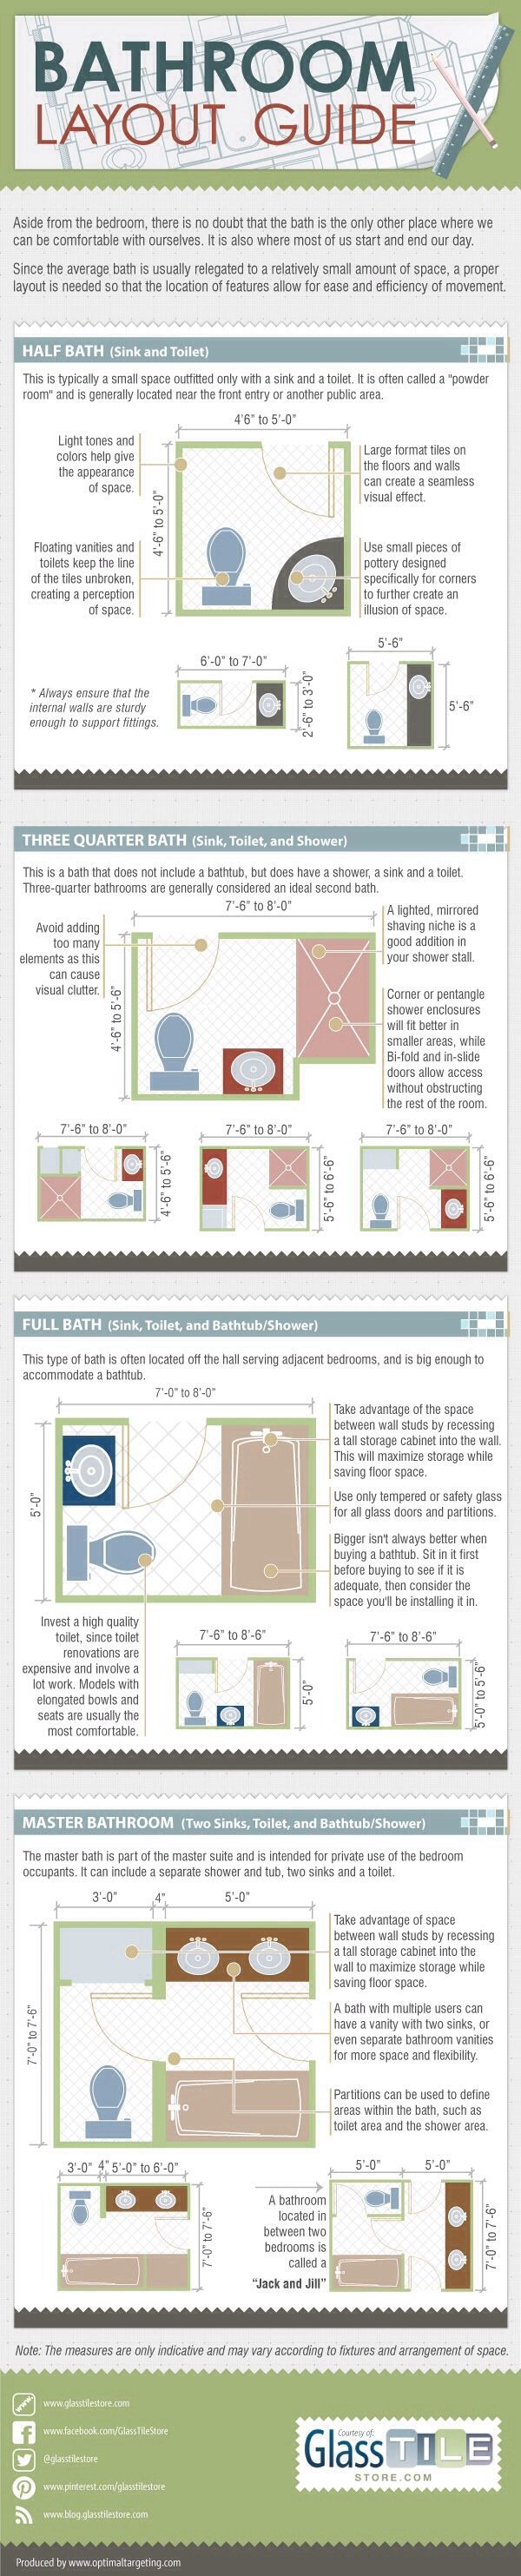 1000 images about bathroom layouts on pinterest for Bathroom ideas 9x9